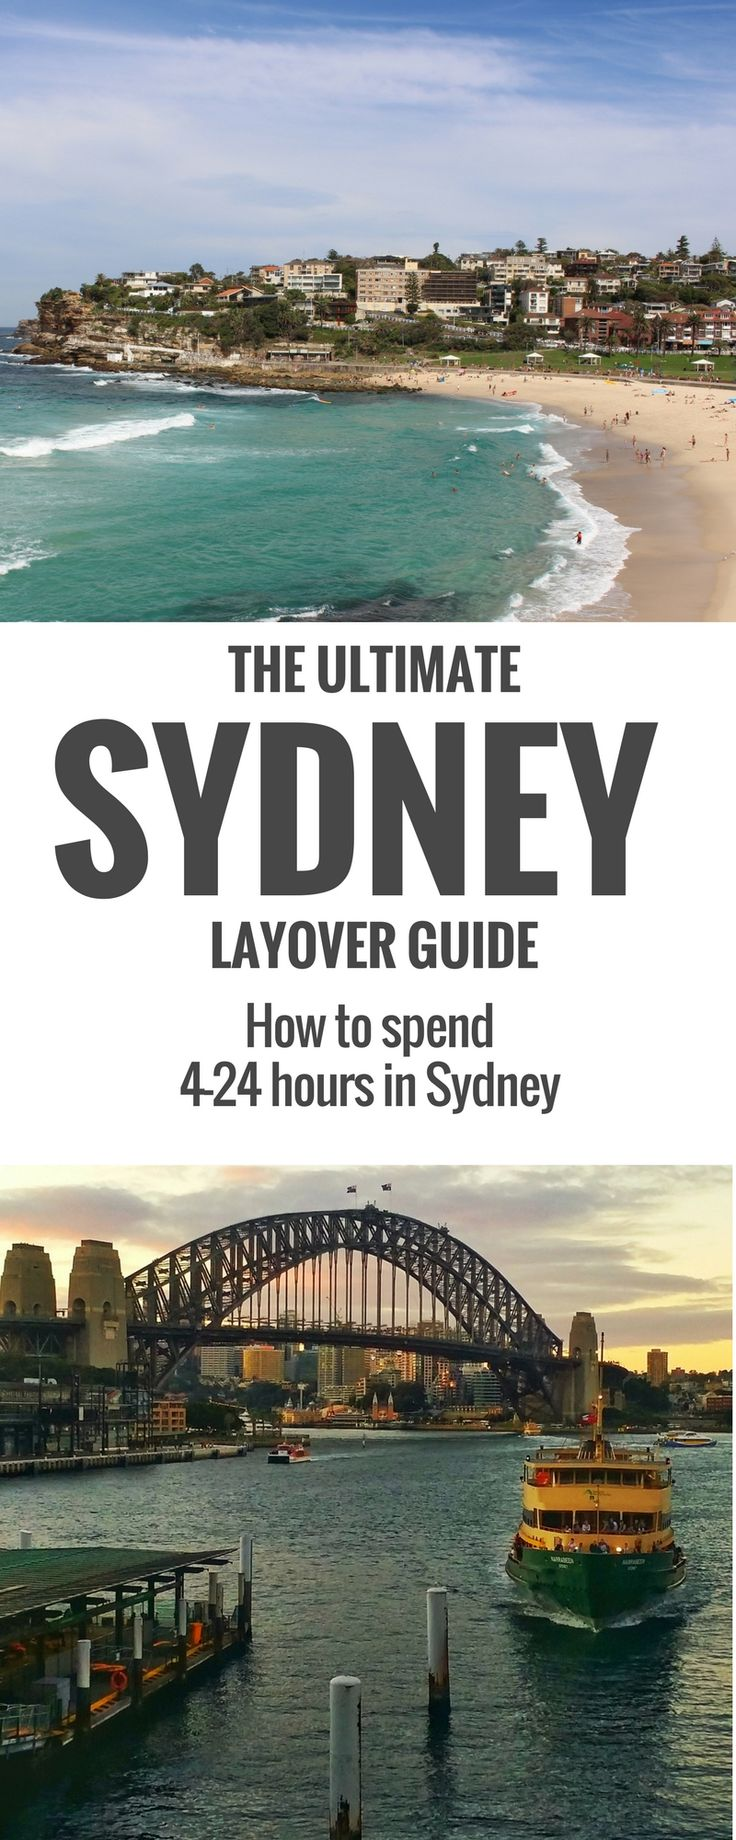 If you have a day in Sydney this guide will help you figure out how much you can see in 4, 8 or 12 hours.